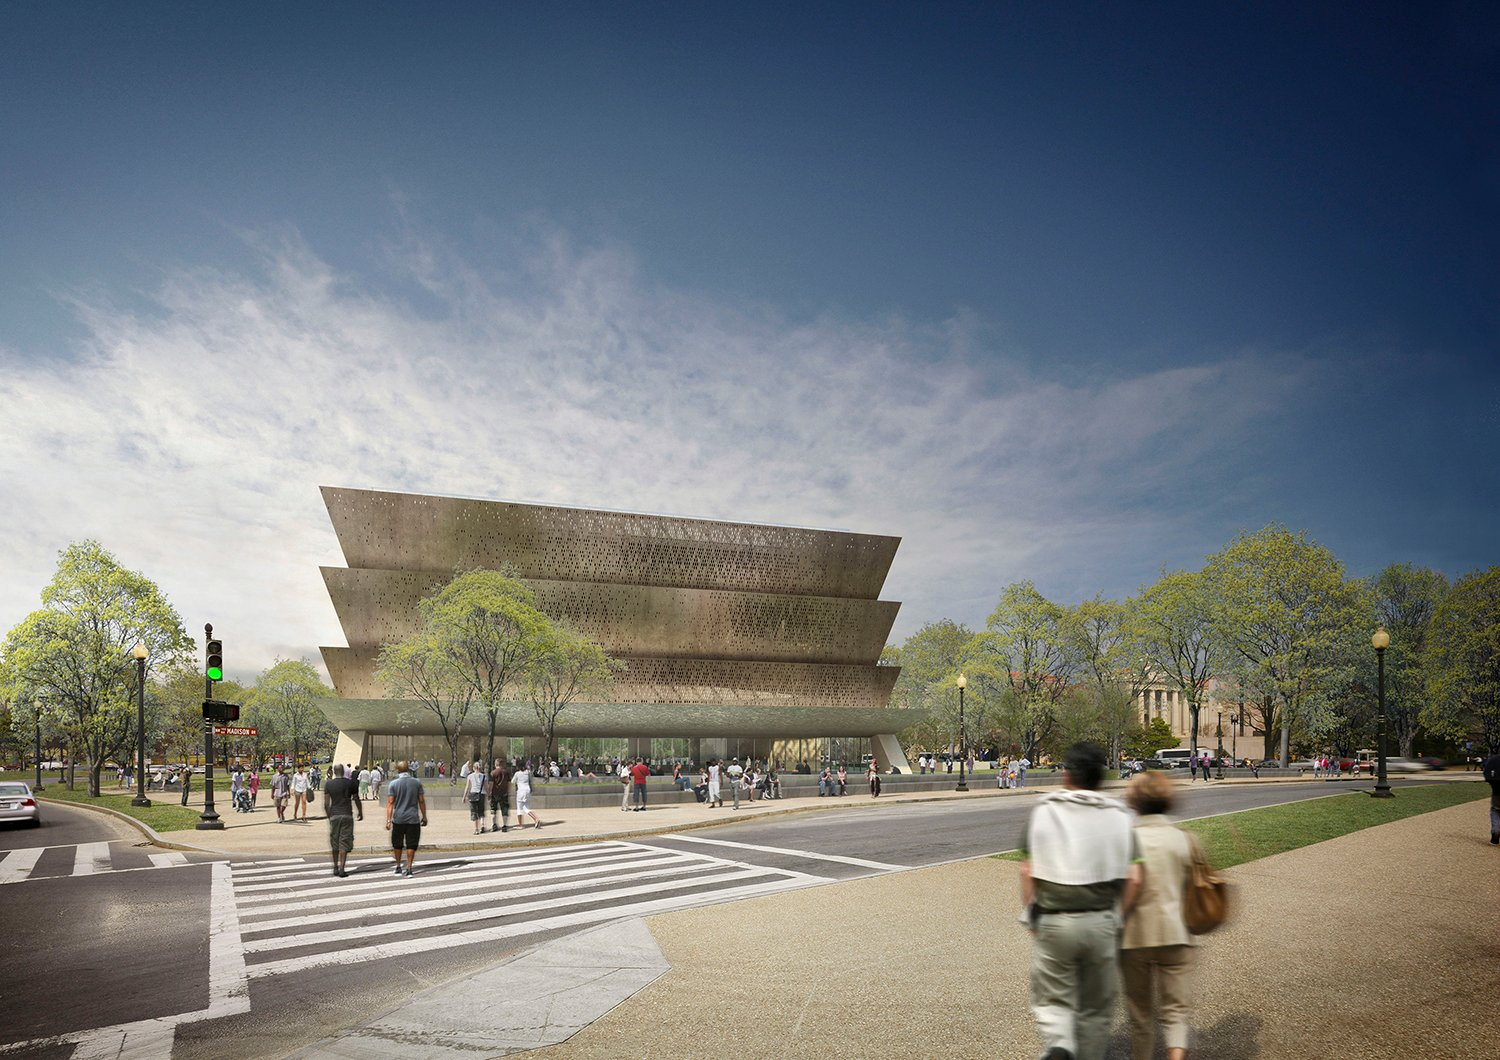 Adjaye Associates. Smithsonian National Museum of African American History and Culture, Washington D.C., current. Courtesy of Adjaye Associates.